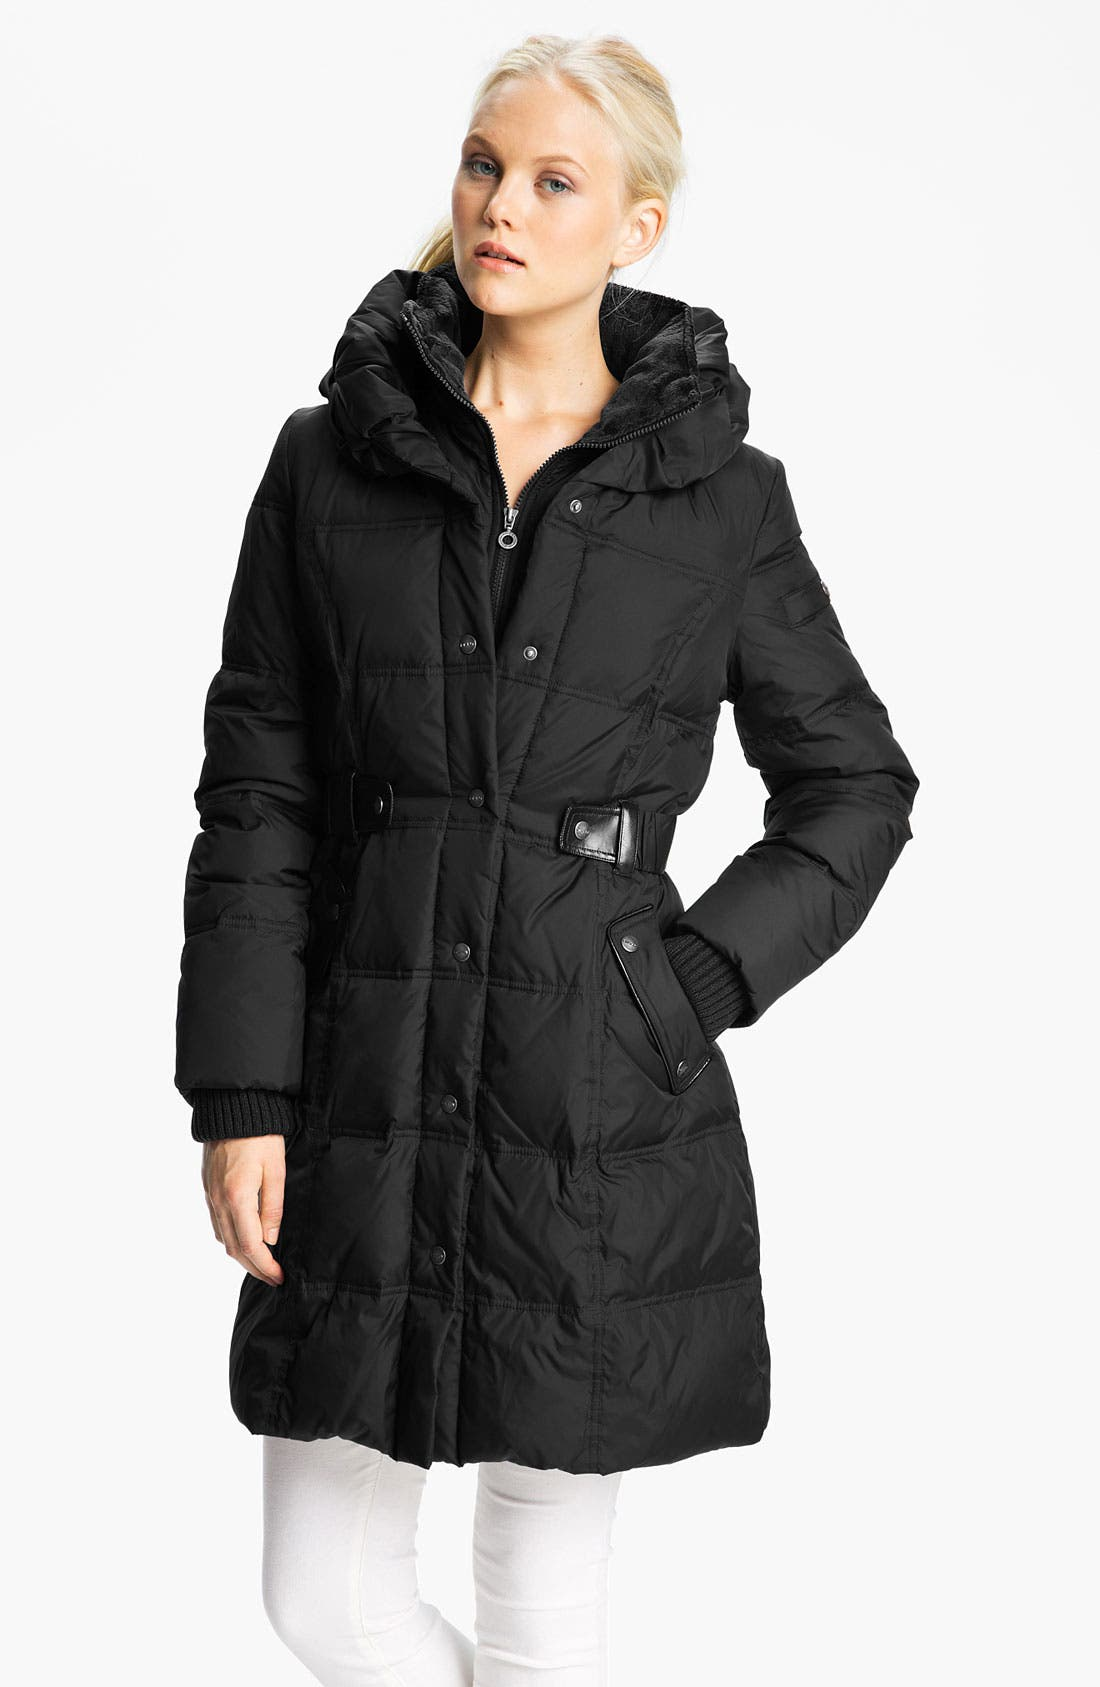 Main Image - DKNY Faux Leather Trim Water Repellent Quilted Coat (Online Exclusive)